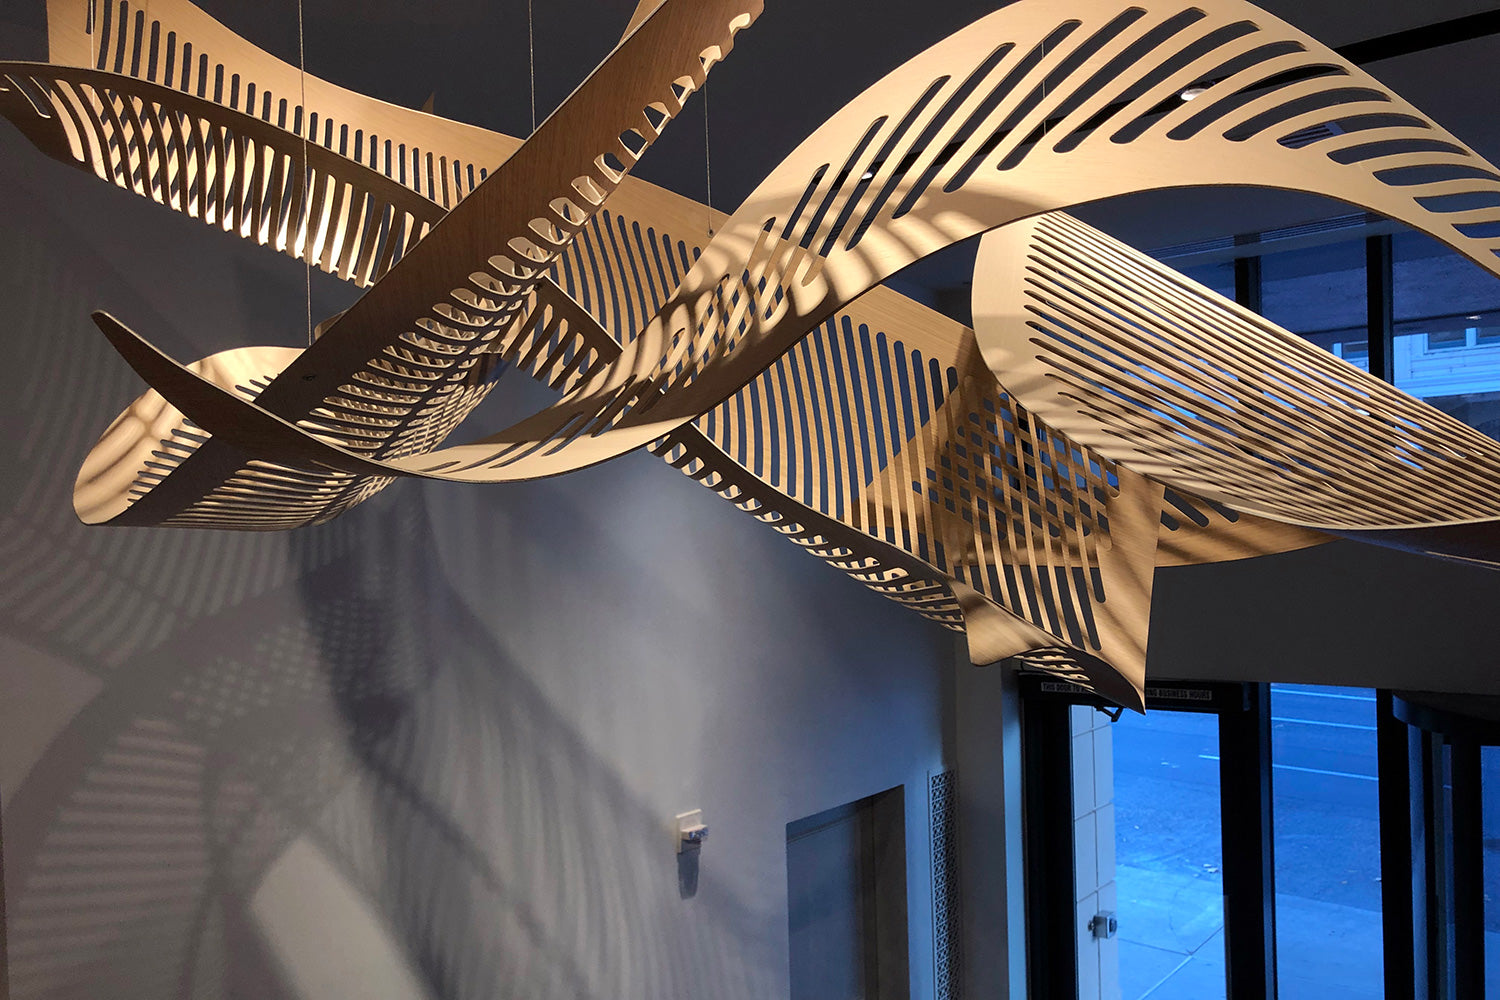 Twisted wood sculpture hanging from a ceiling